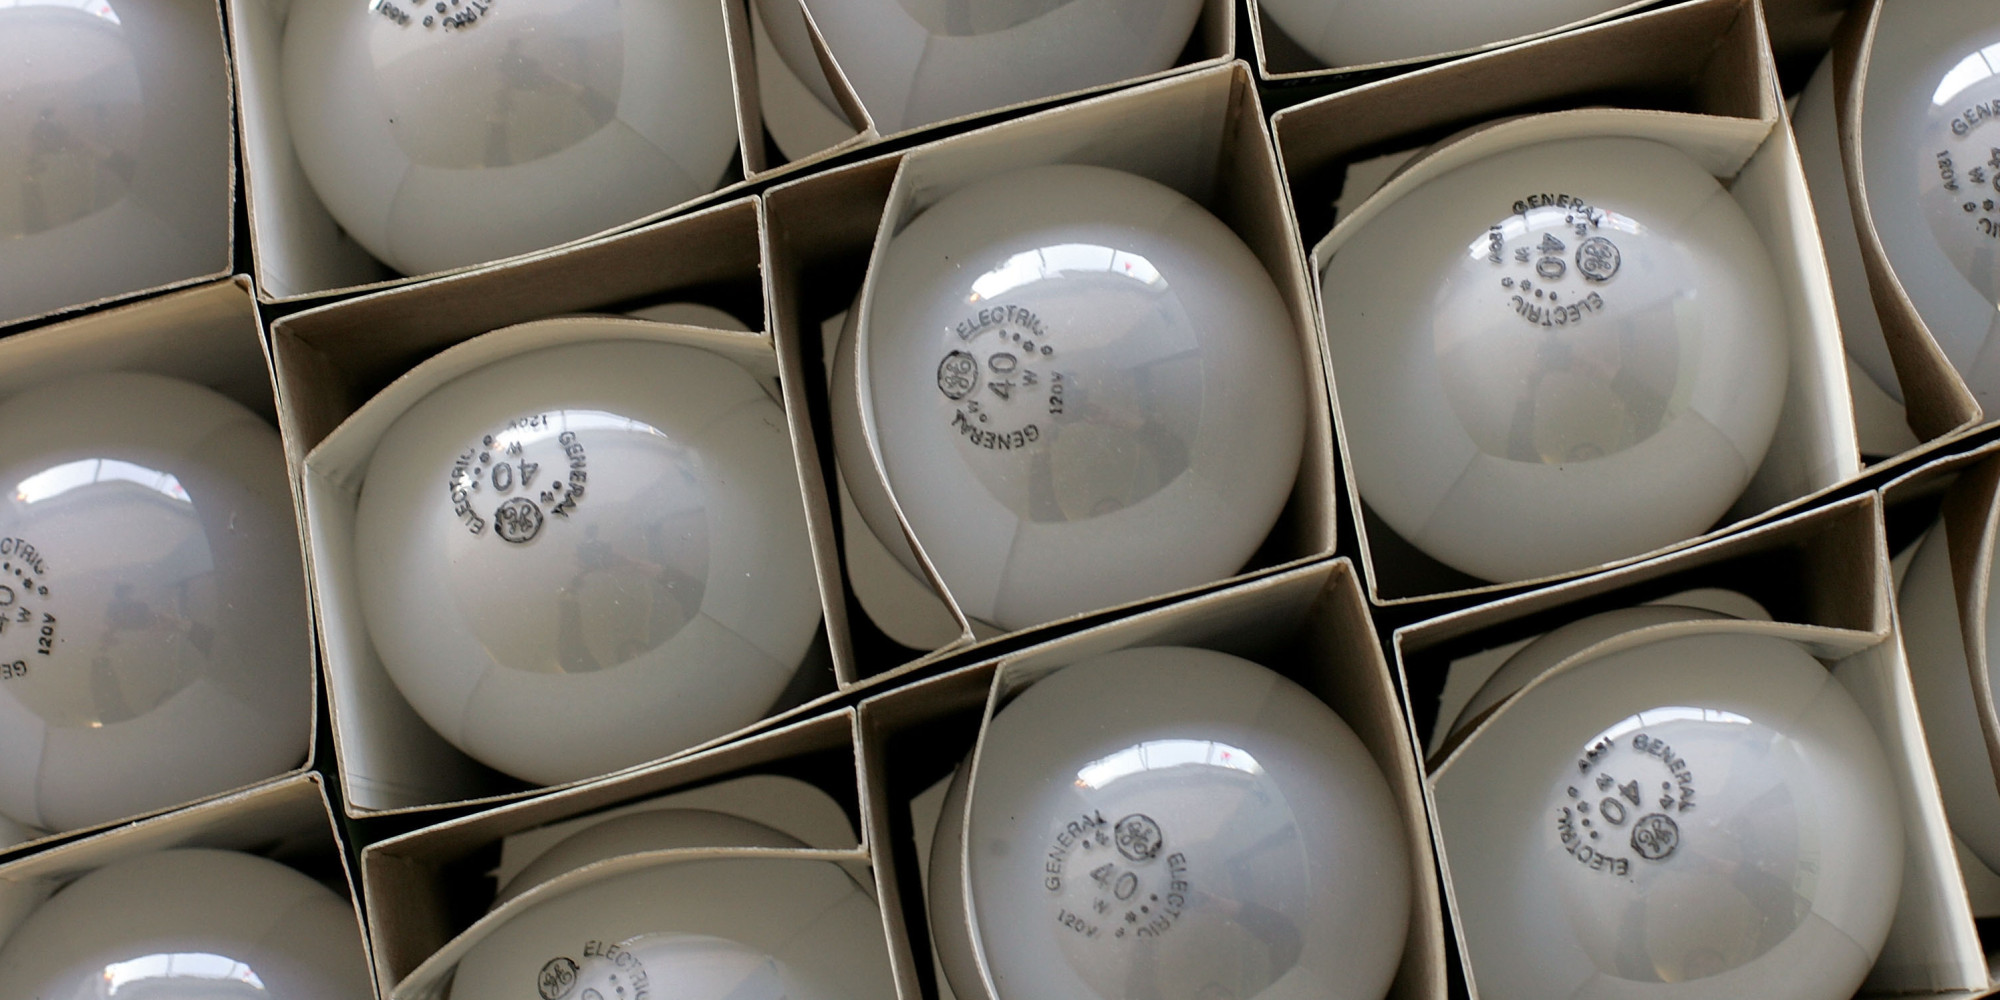 Only 4 In 10 Americans Are Aware Of The Incandescent Lightbulb Phase Out Huffpost